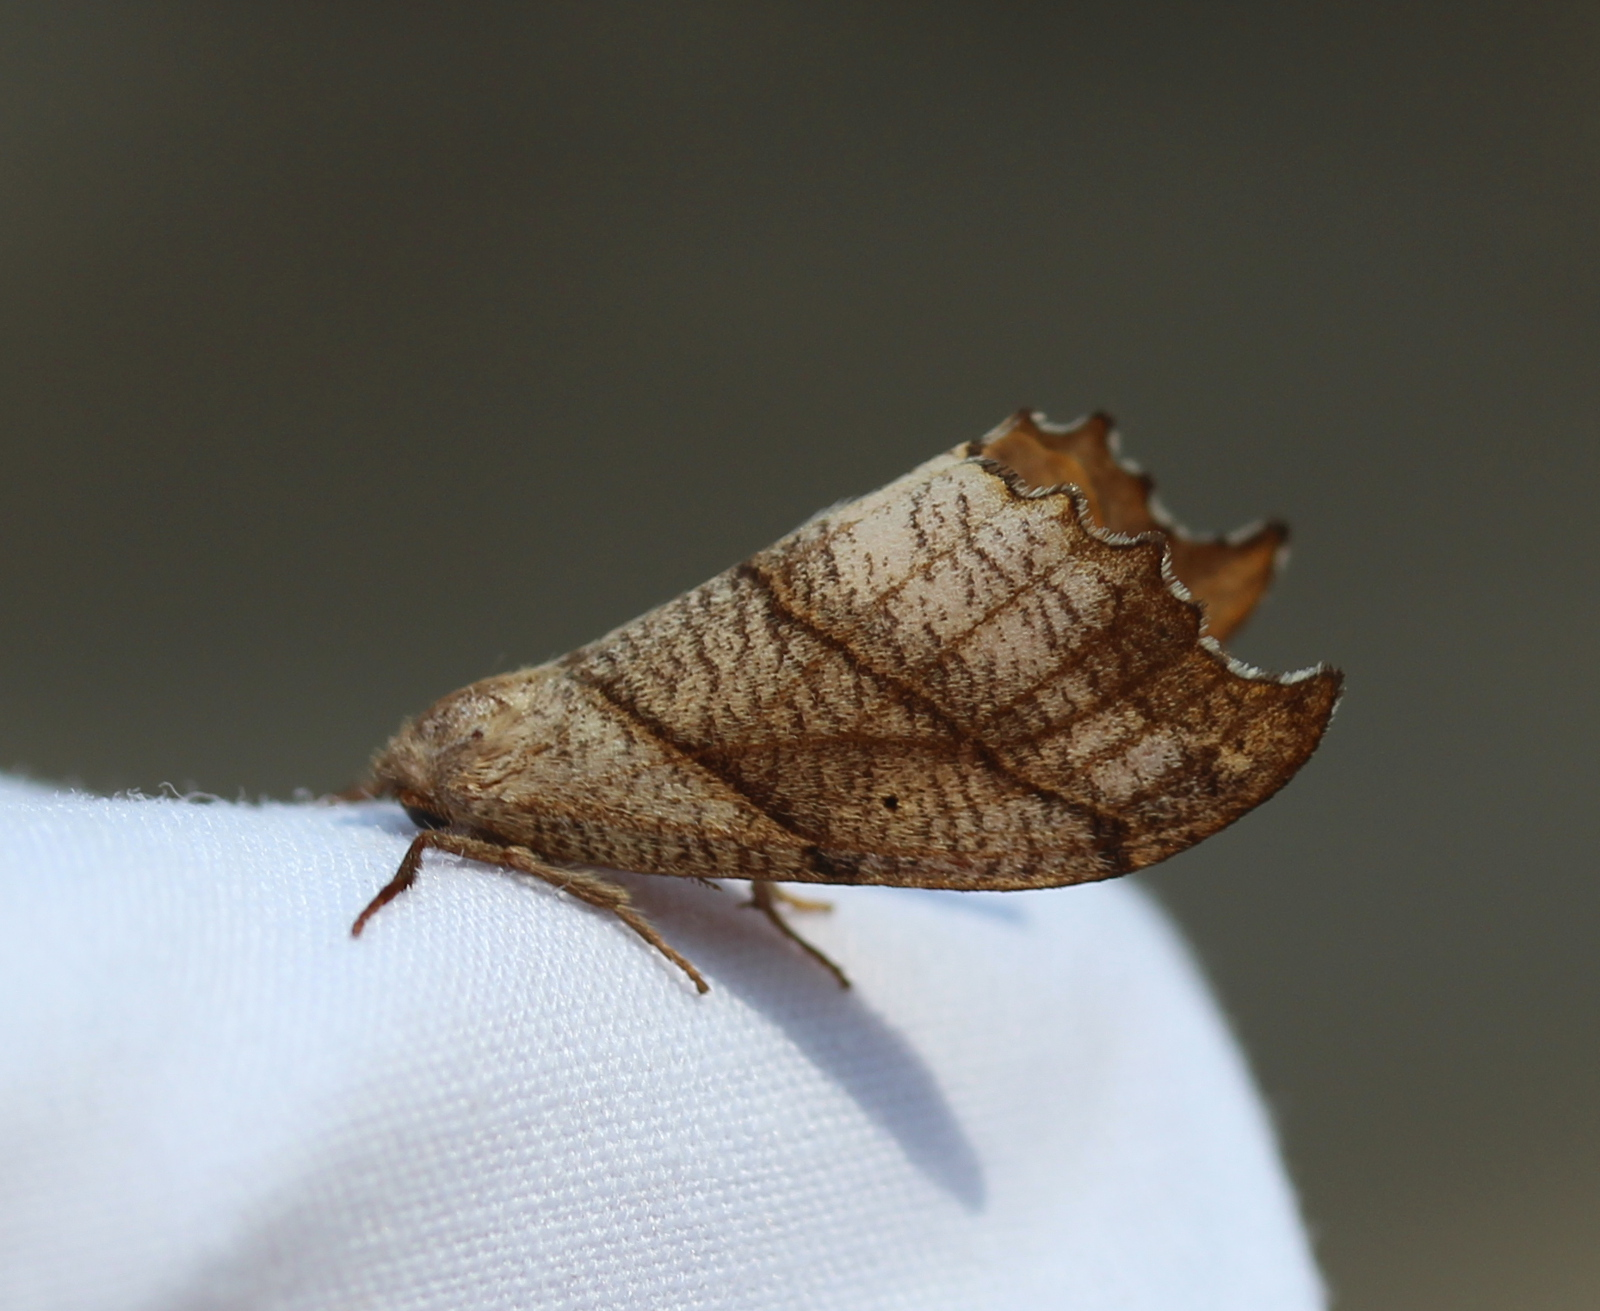 Brown moth, raised profile on white sheet.